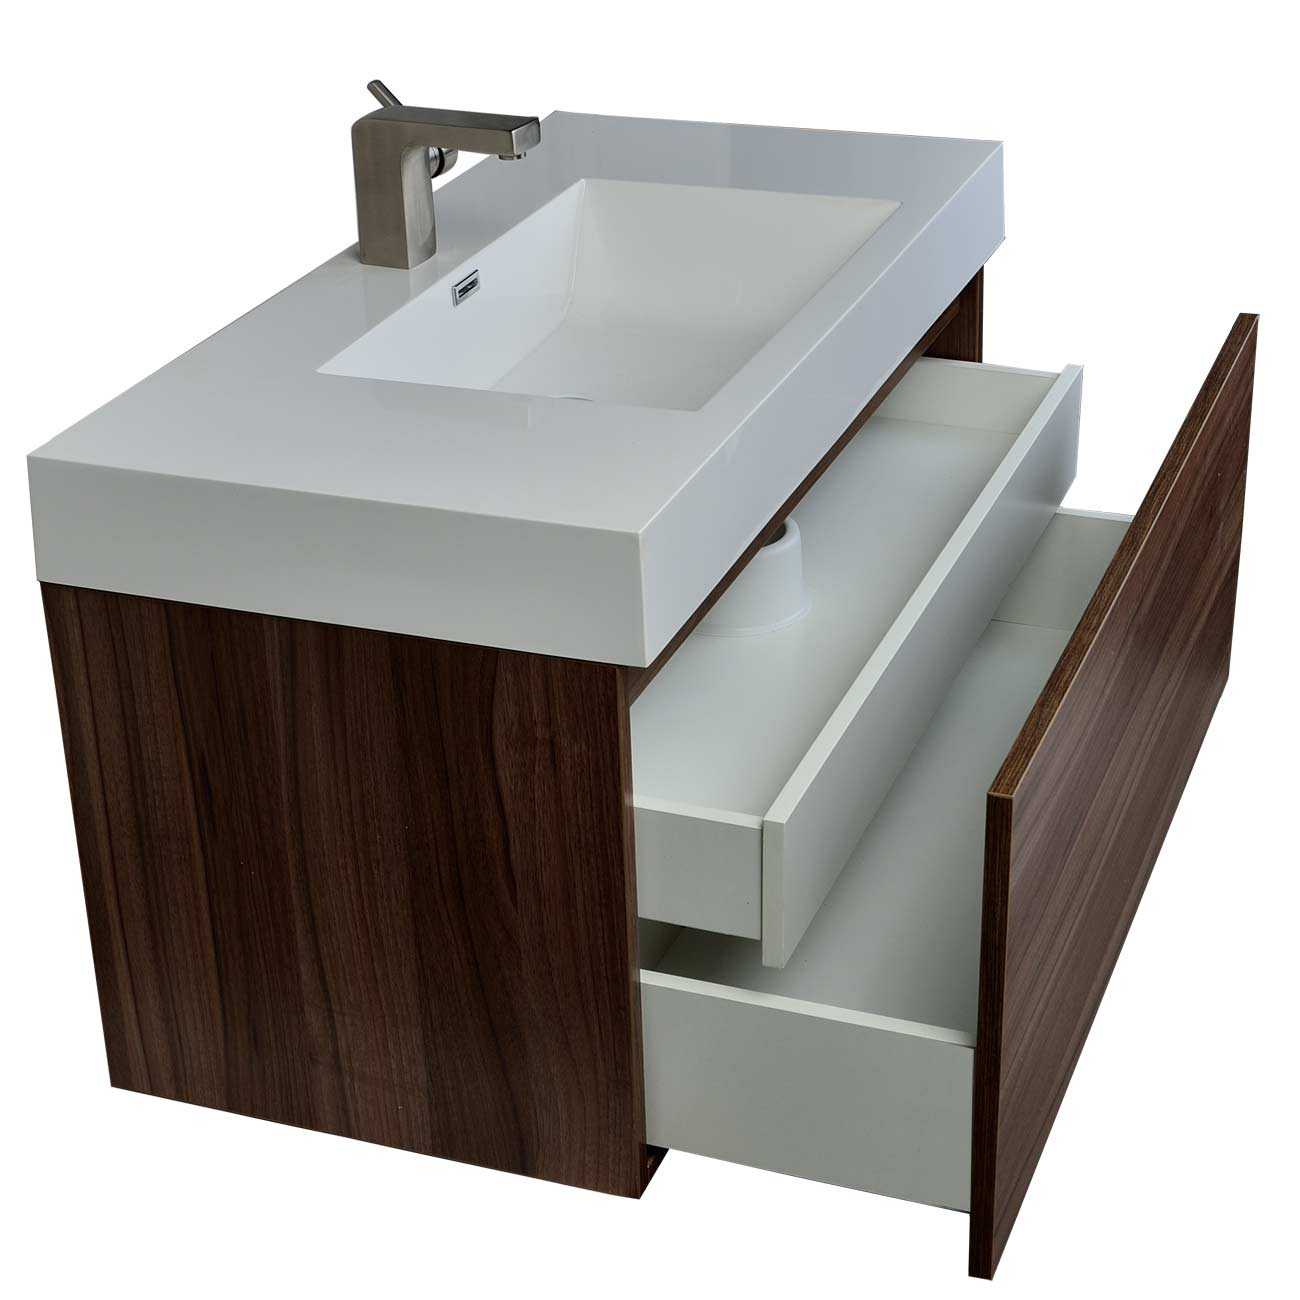 Bathroom Vanitiy Modern Bathroom Vanity In Walnut Finish Tn A1000 Wn